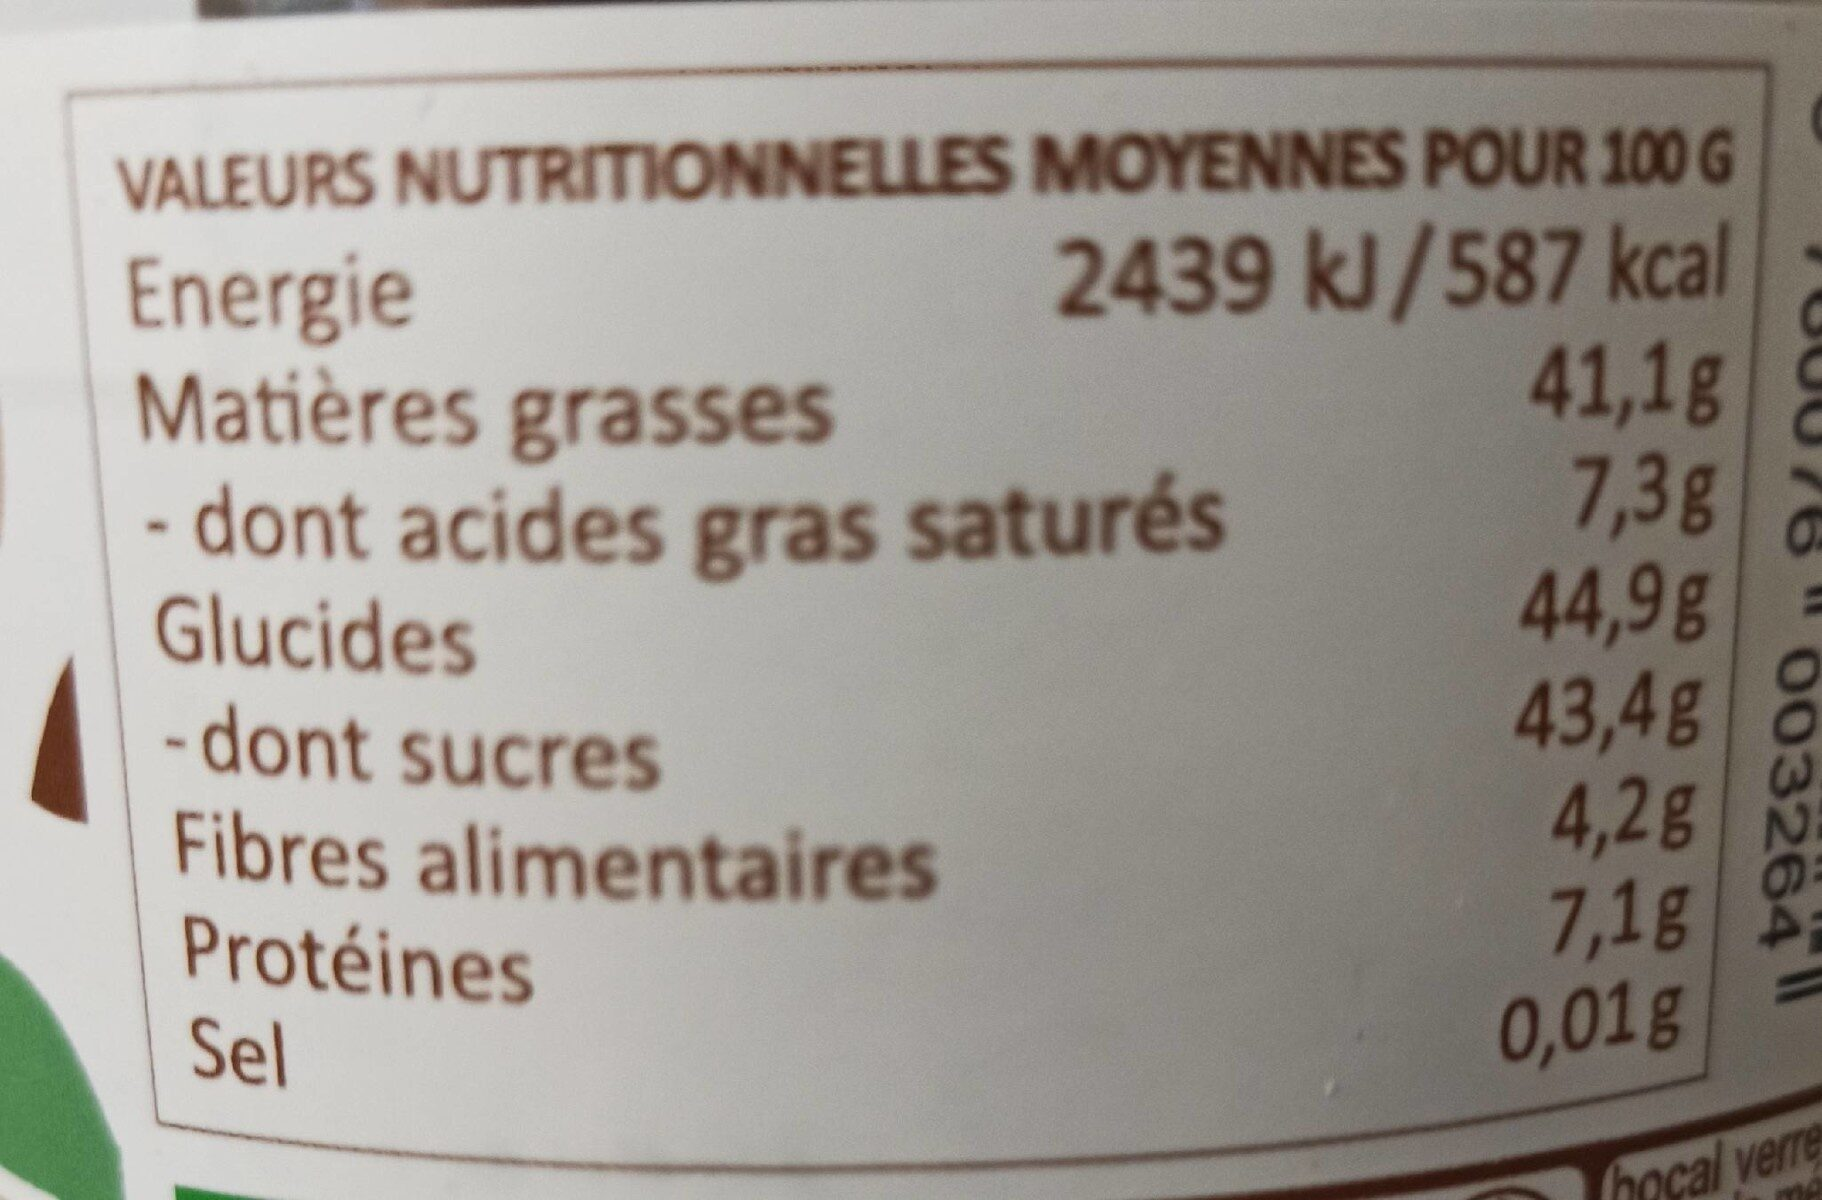 Choco noisette - Nutrition facts - fr